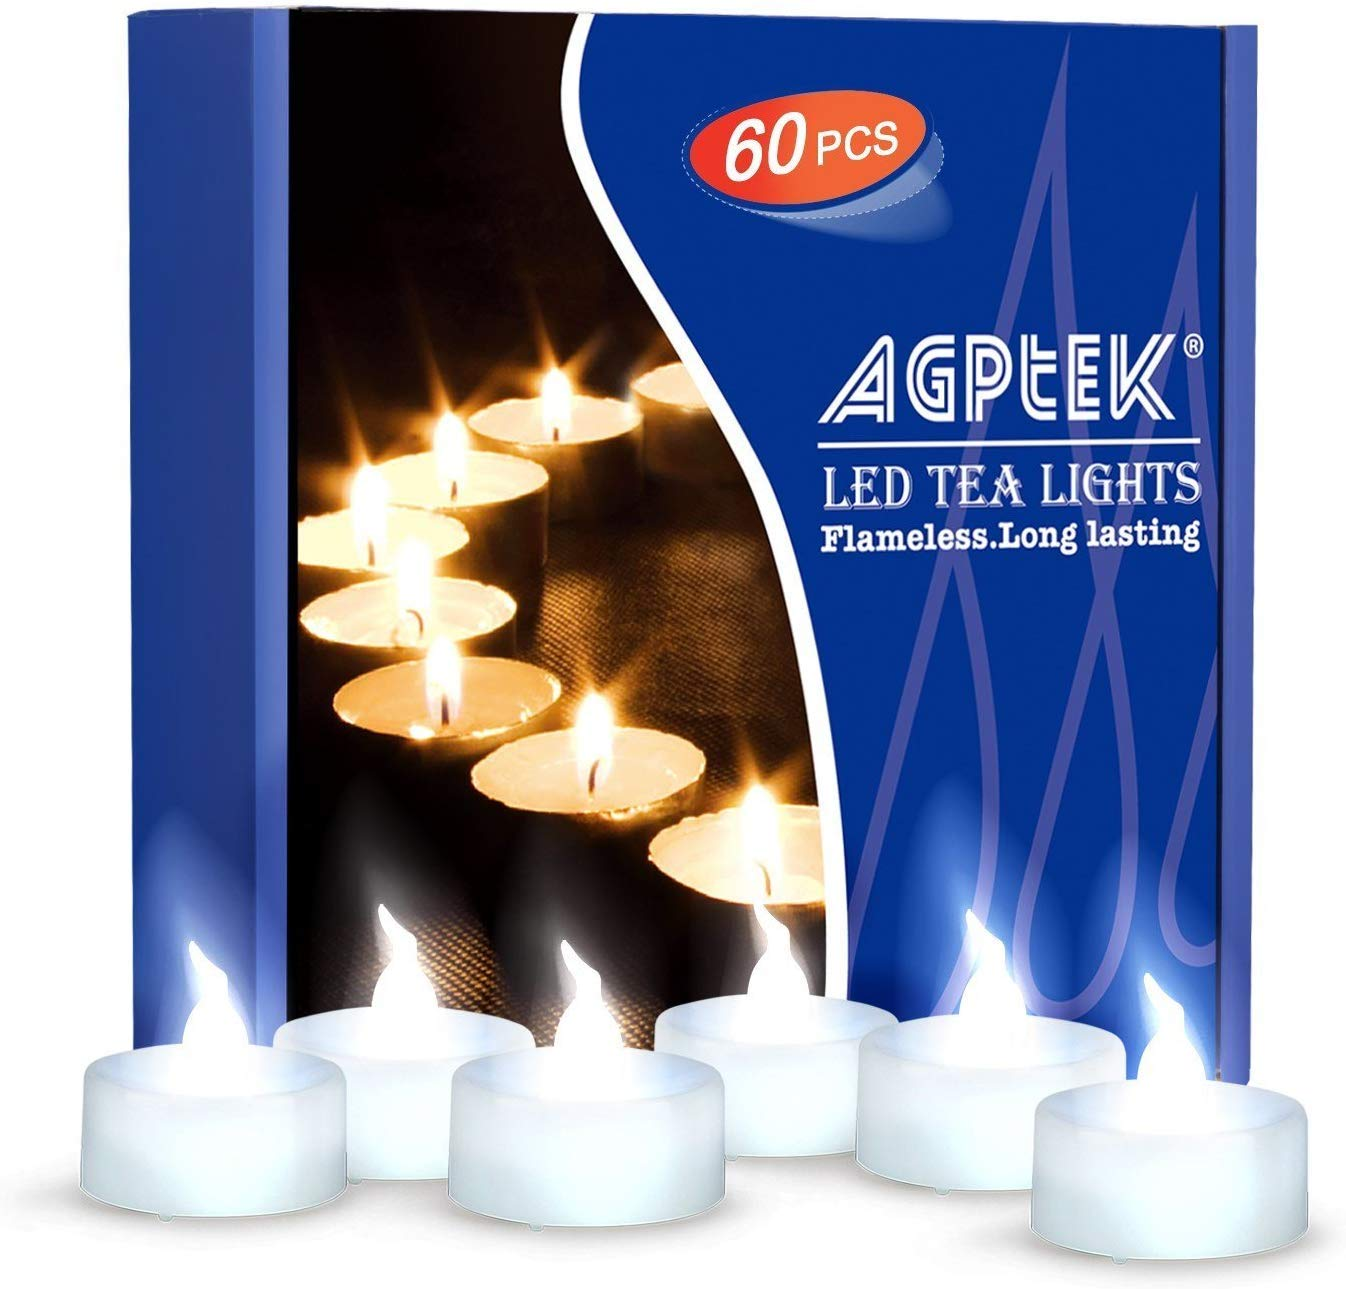 AGPtEK Tea Lights,60 Pack Flameless LED Candles Battery Operated Tealight Candles No Flicker Long Lasting Tealight for Wedding Holiday Party Home Decoration(Cool White)